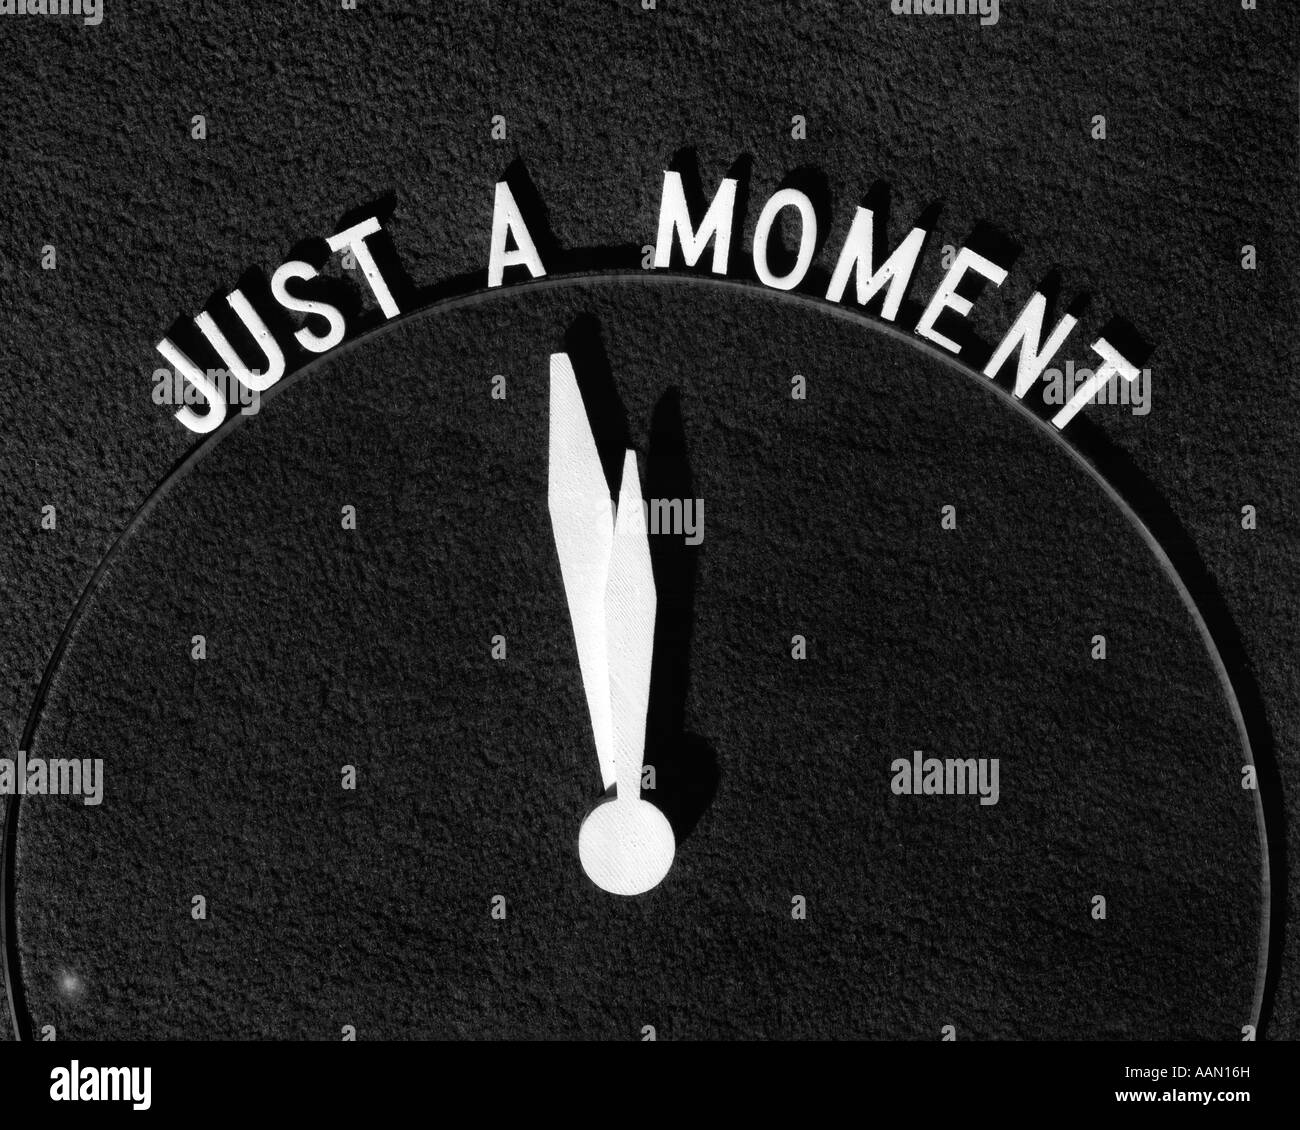 SIGN JUST A MOMENT CLOCK - Stock Image